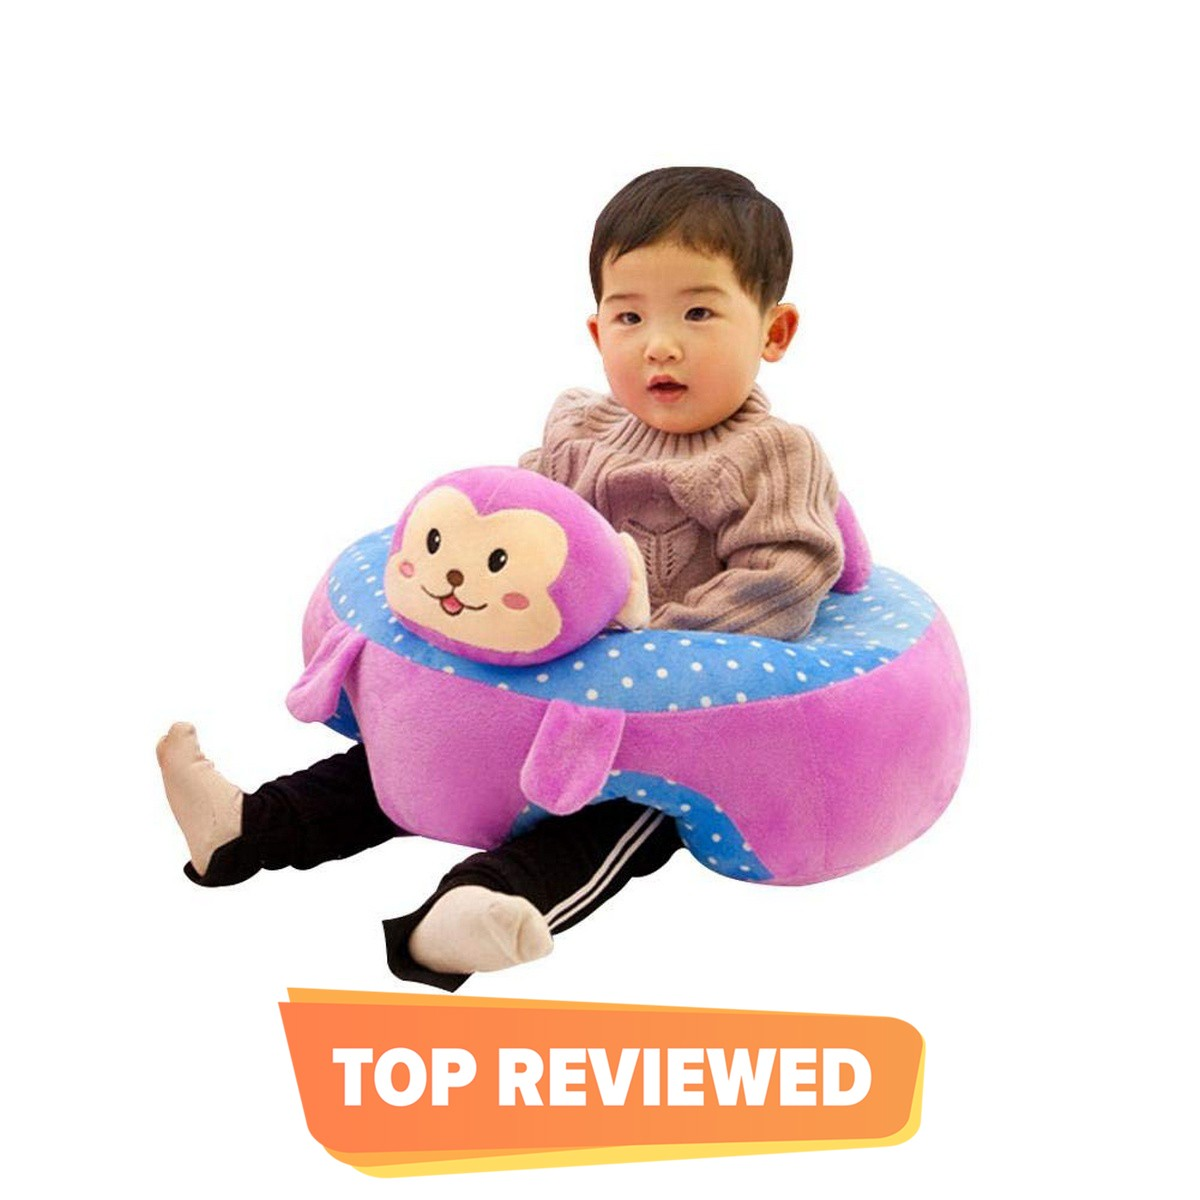 Baby Black Mickey Mouse Seats Sofa Plush Support Seat Learning To Sit Baby Plush Toys